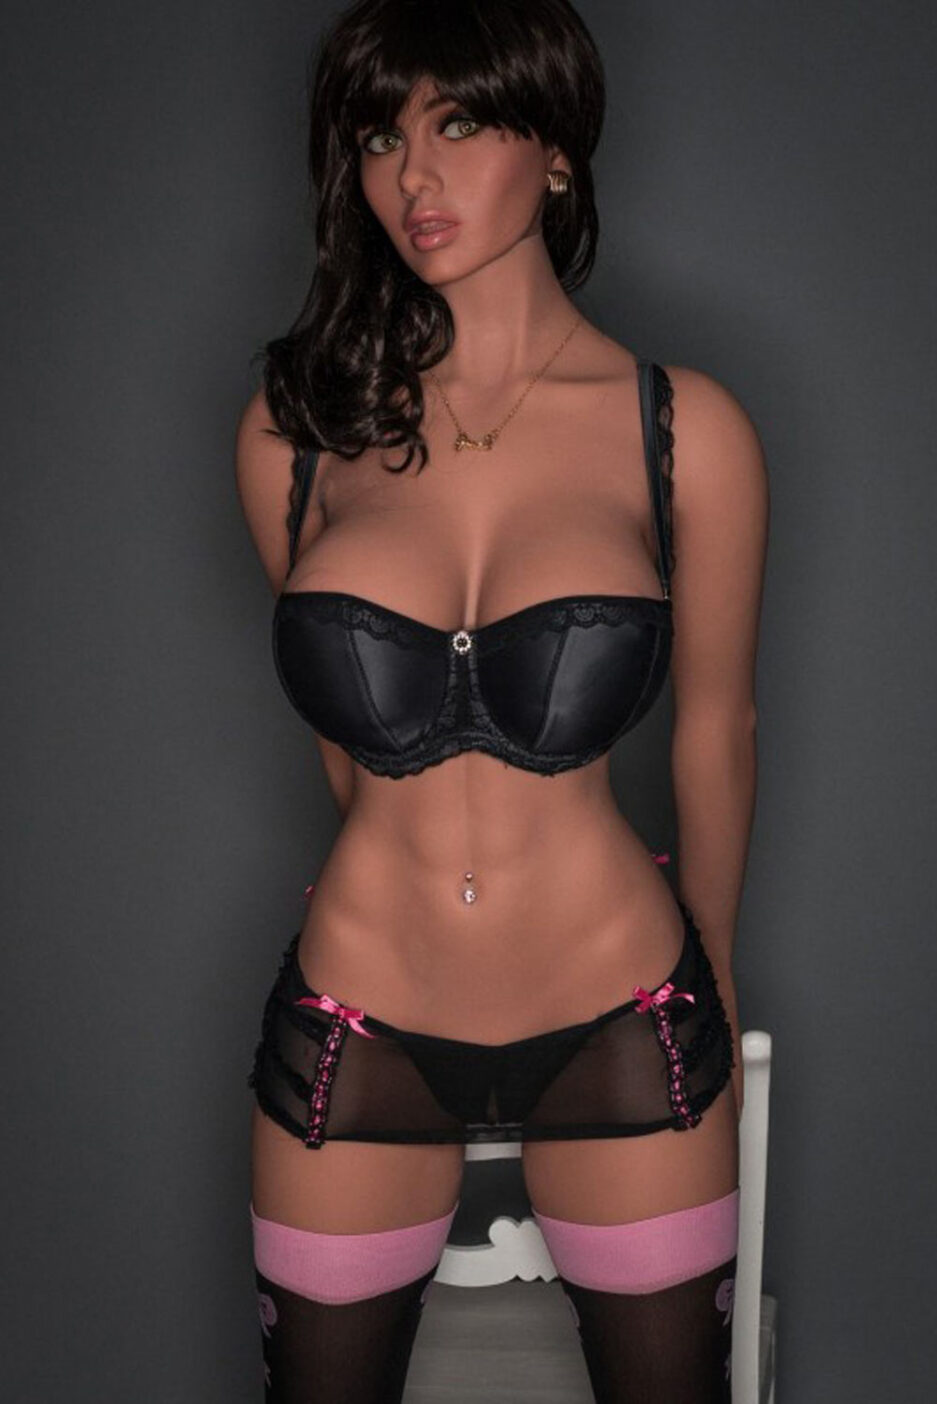 Big breasted sex doll with hands behind